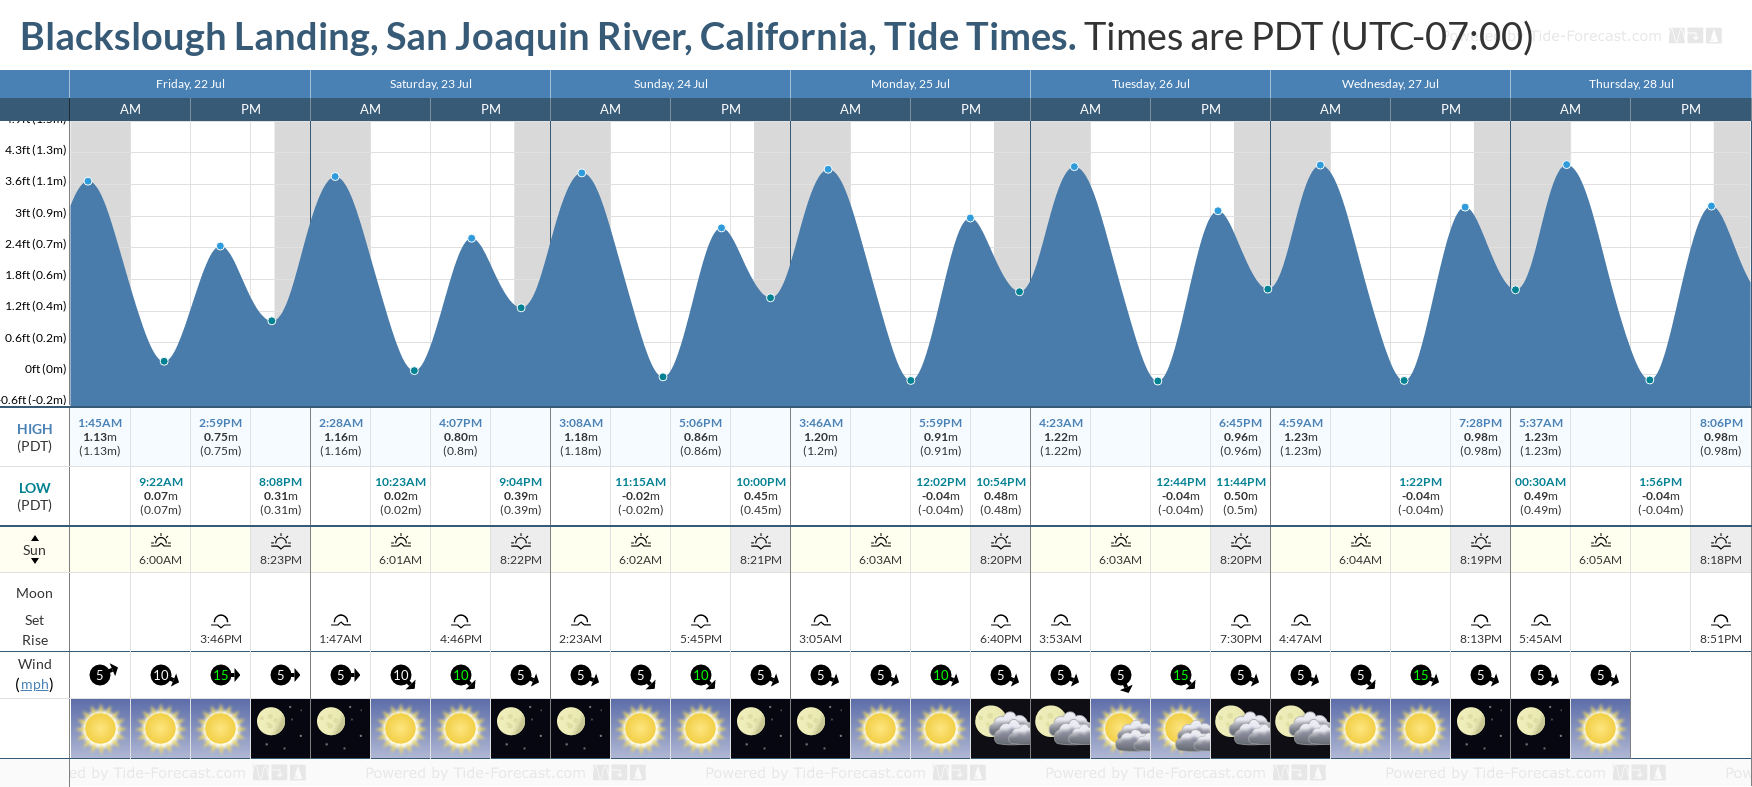 Blackslough Landing, San Joaquin River, California Tide Chart including high and low tide tide times for the next 7 days